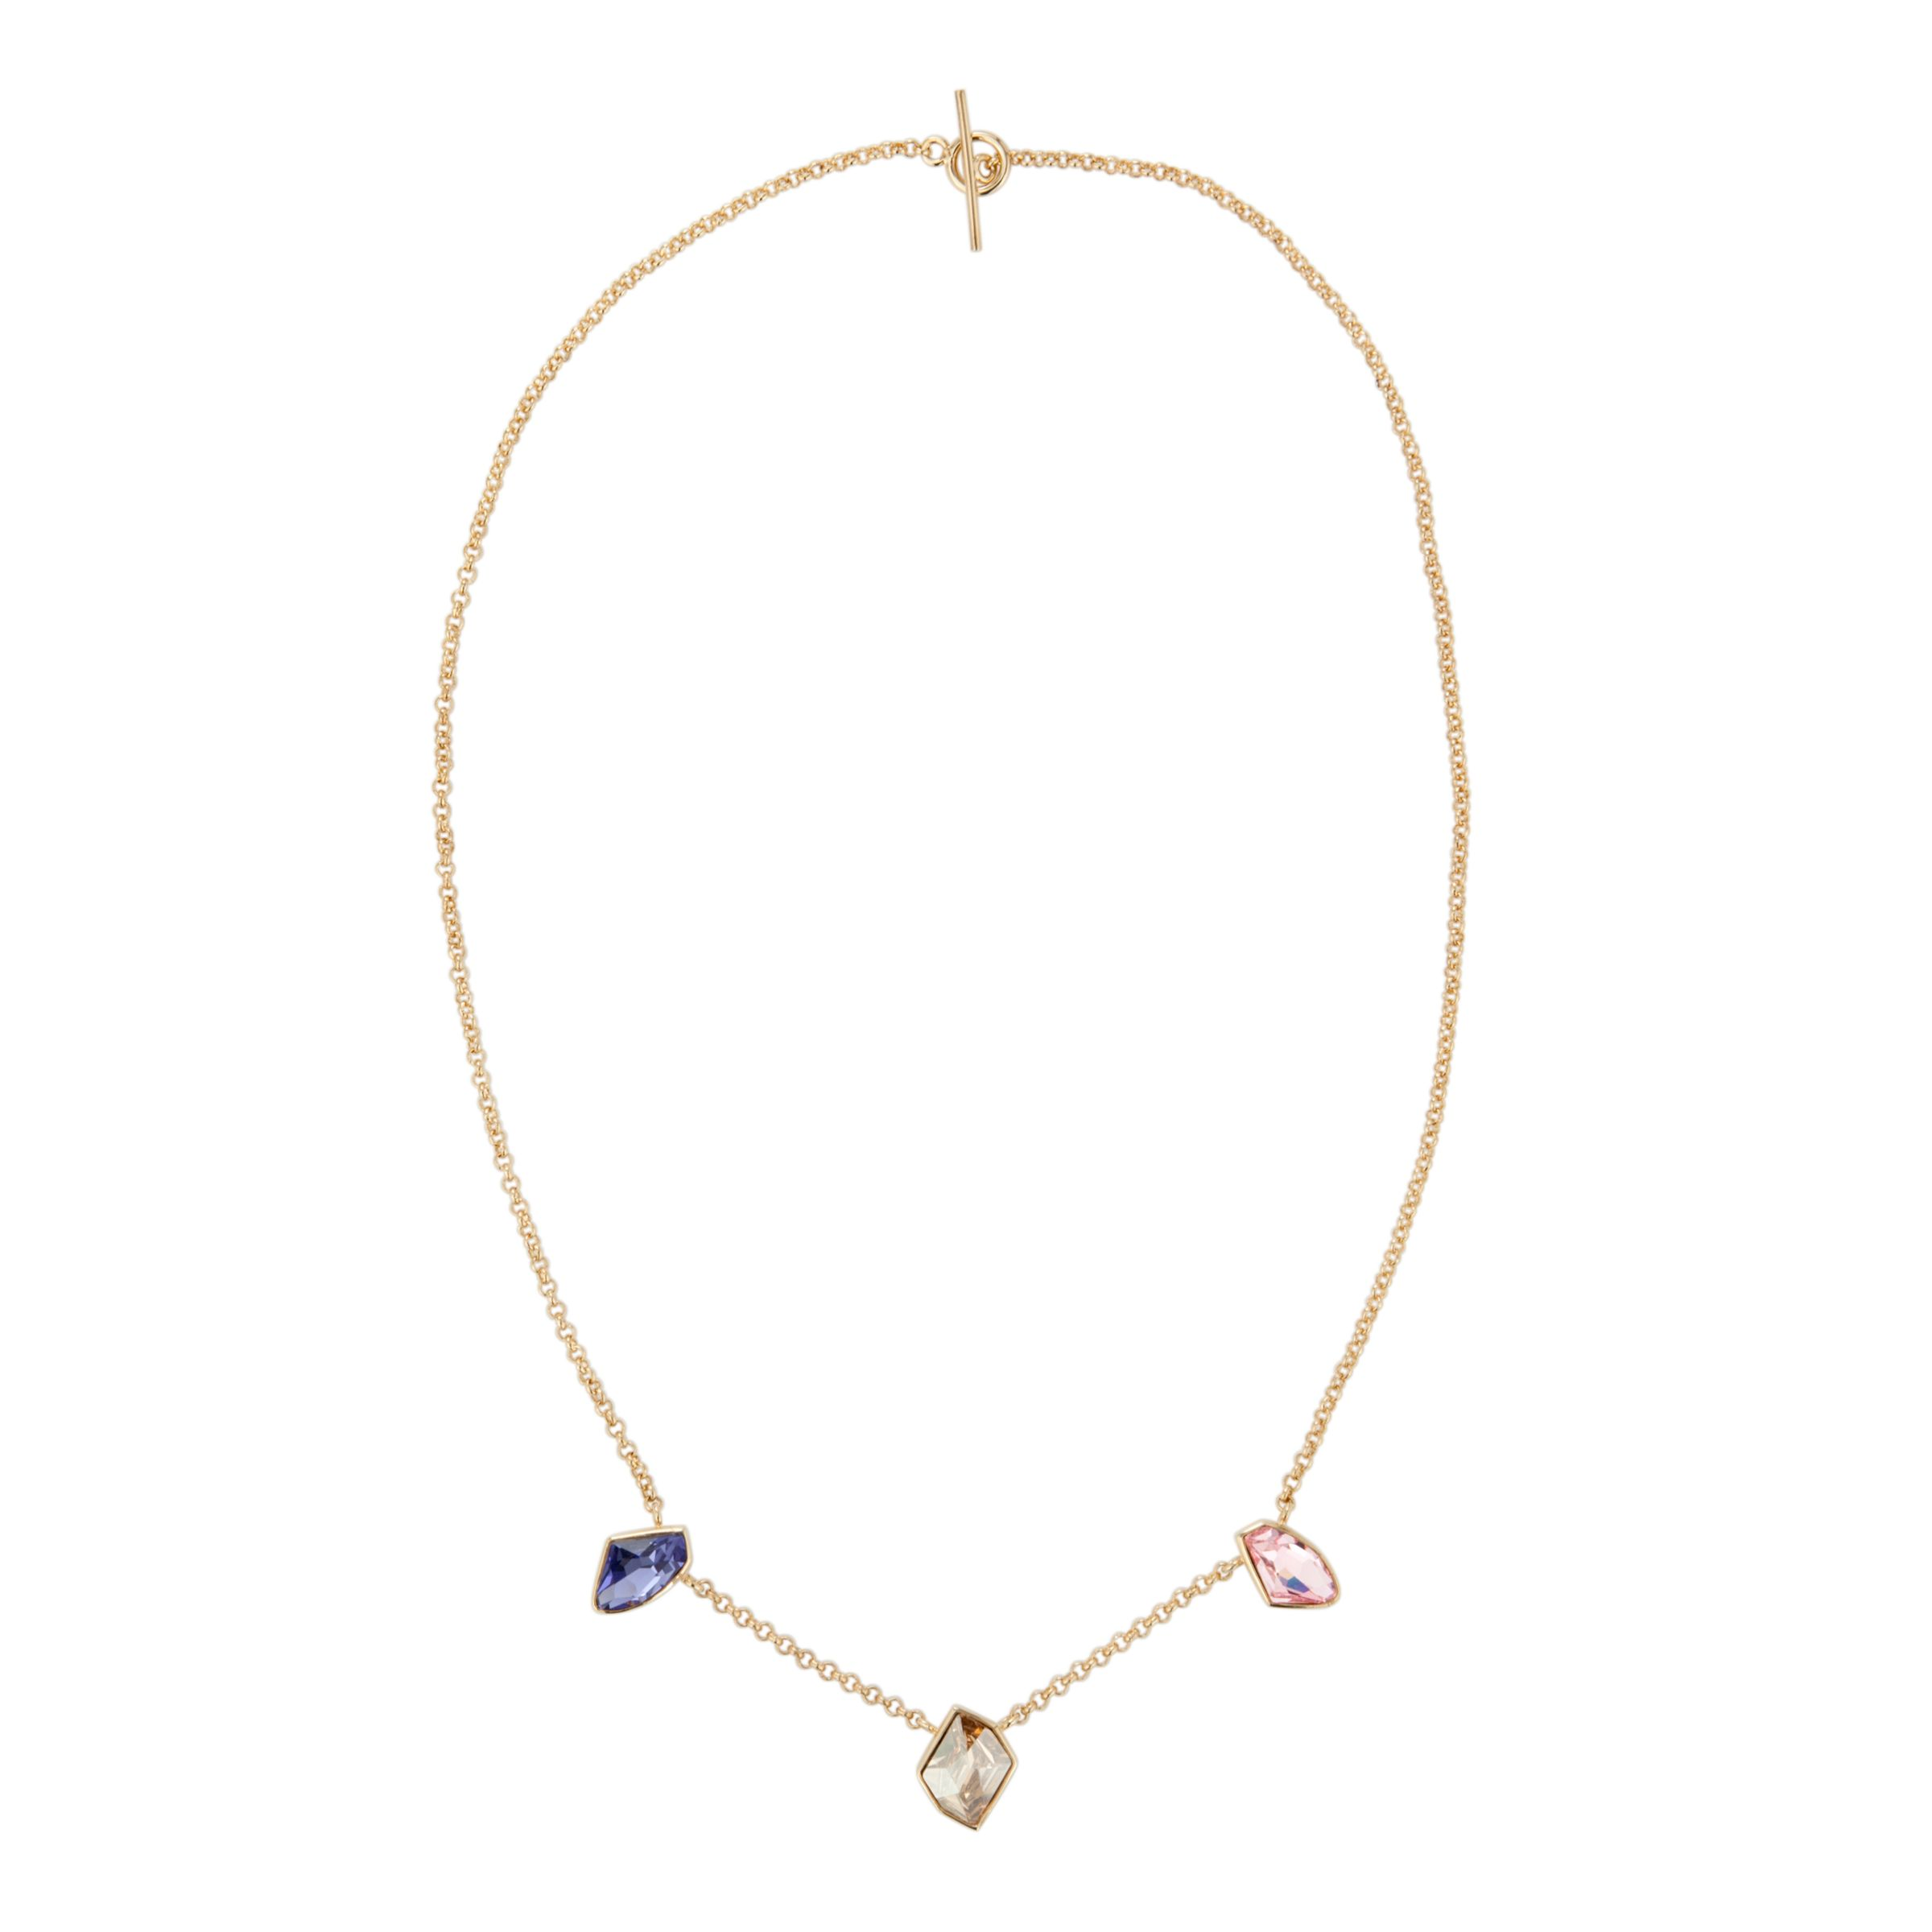 Inara Gold Plated 3 Crystal Pendant Necklace